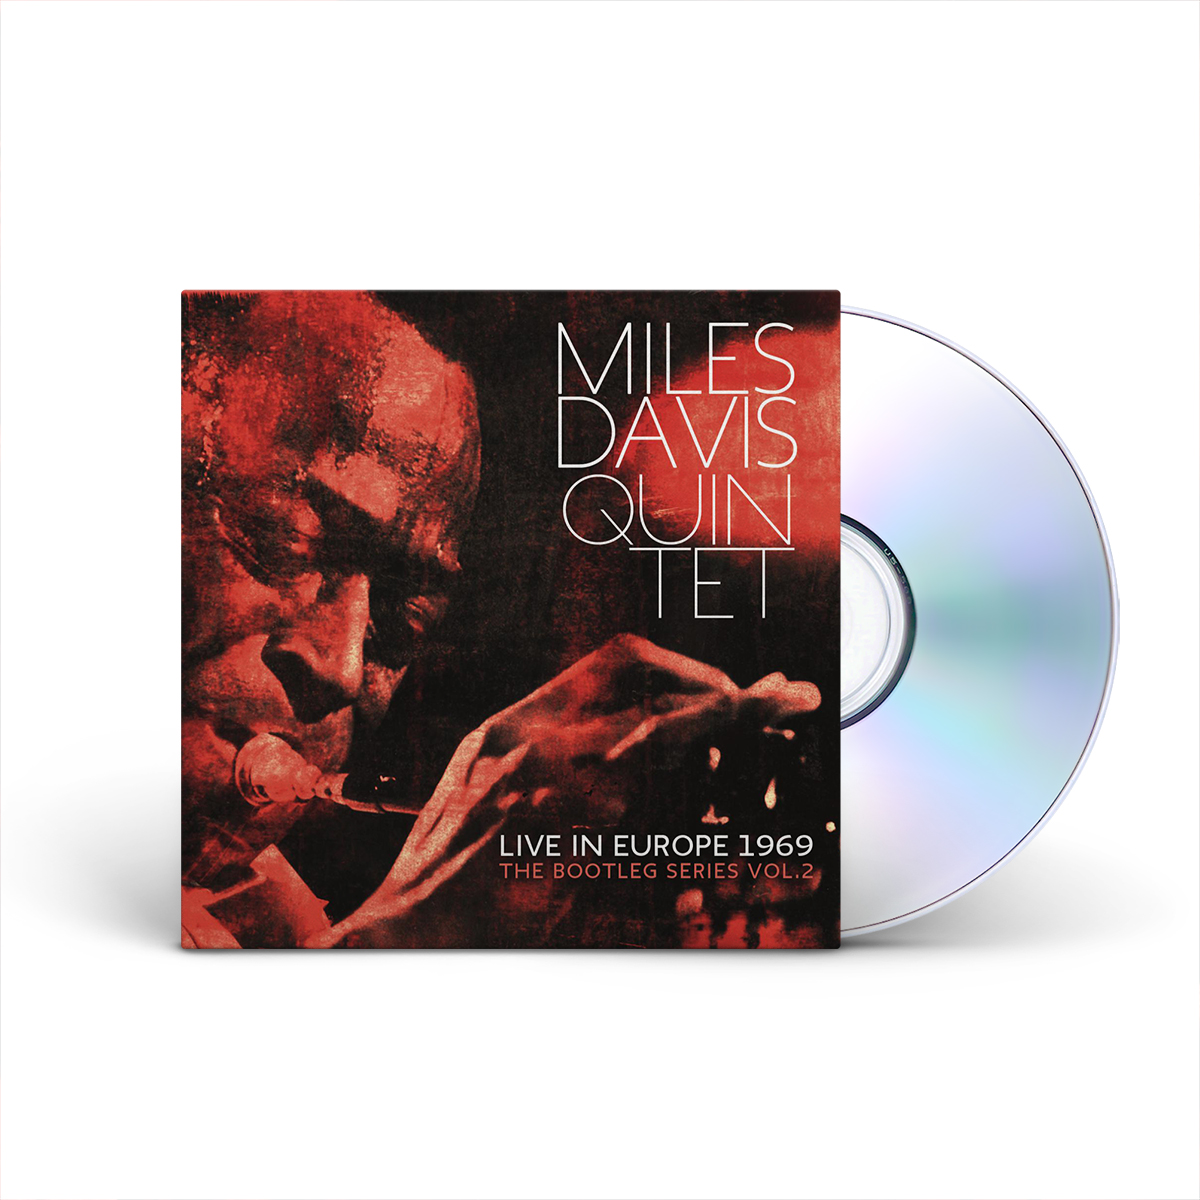 Miles Davis Quintet: Live In Europe 1969 The Bootleg Series Vol. 2 4-disc CD